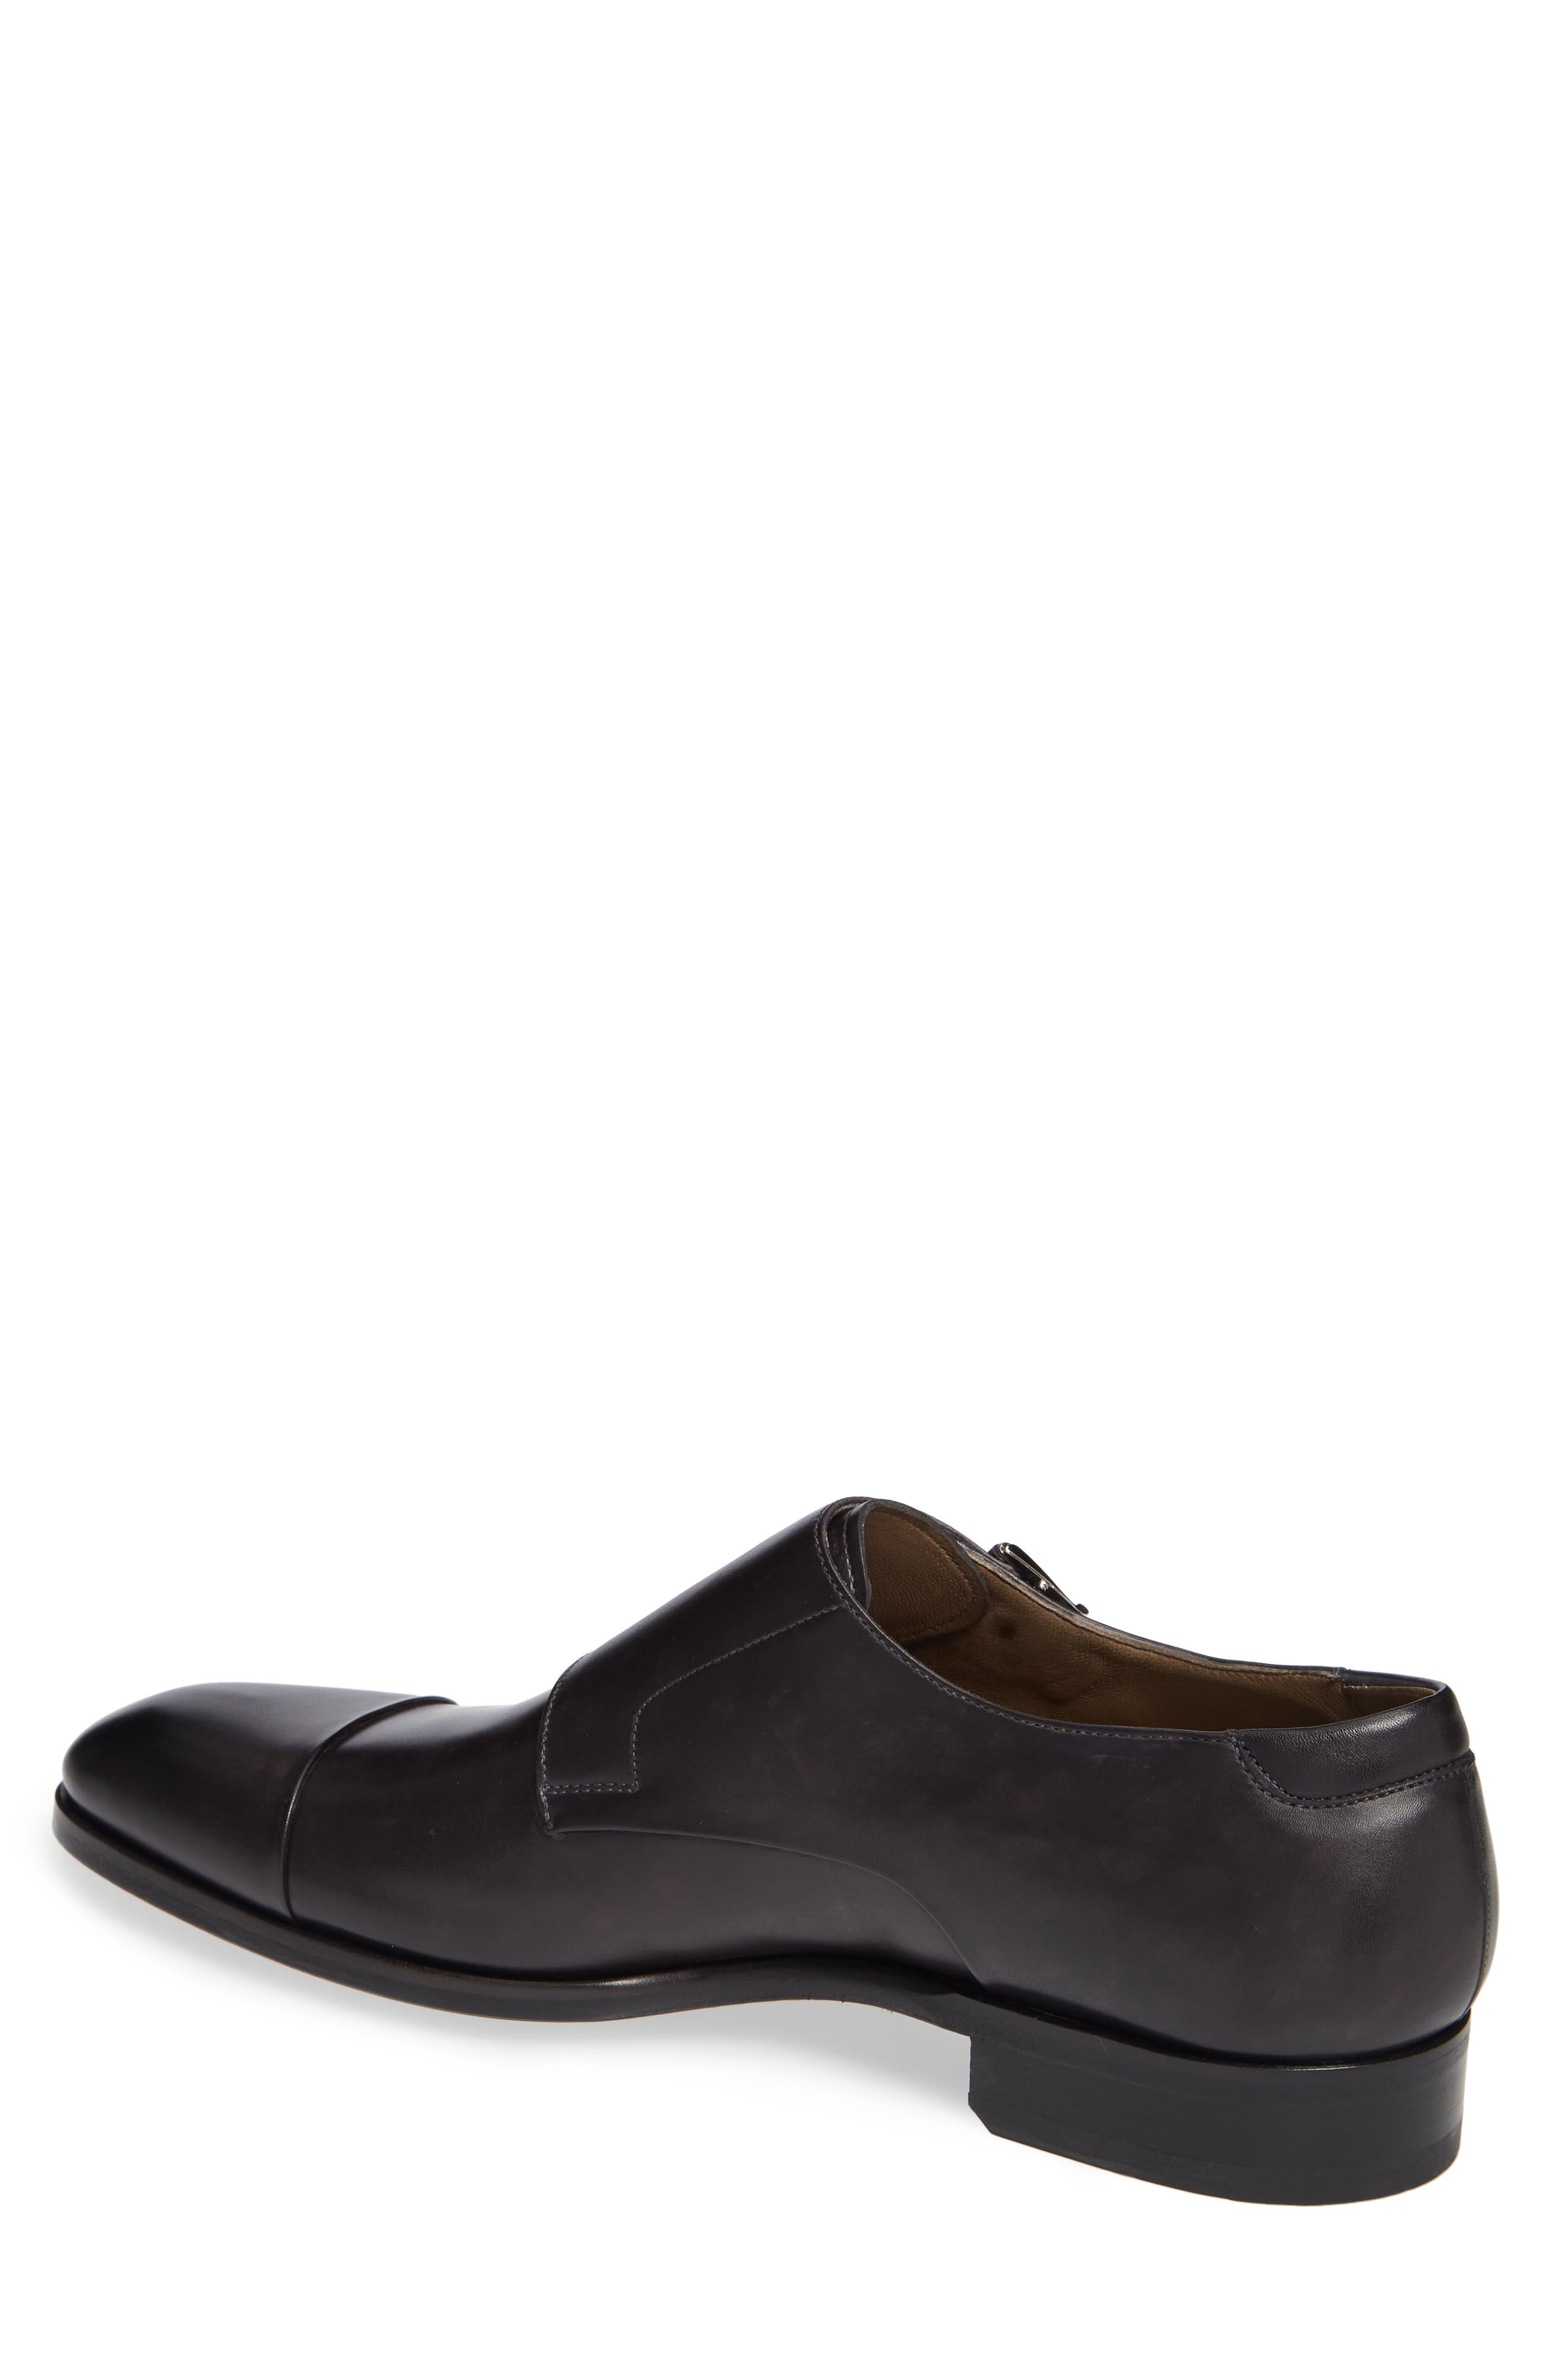 Riva Double Monk Strap Shoe,                             Alternate thumbnail 2, color,                             GREY LEATHER